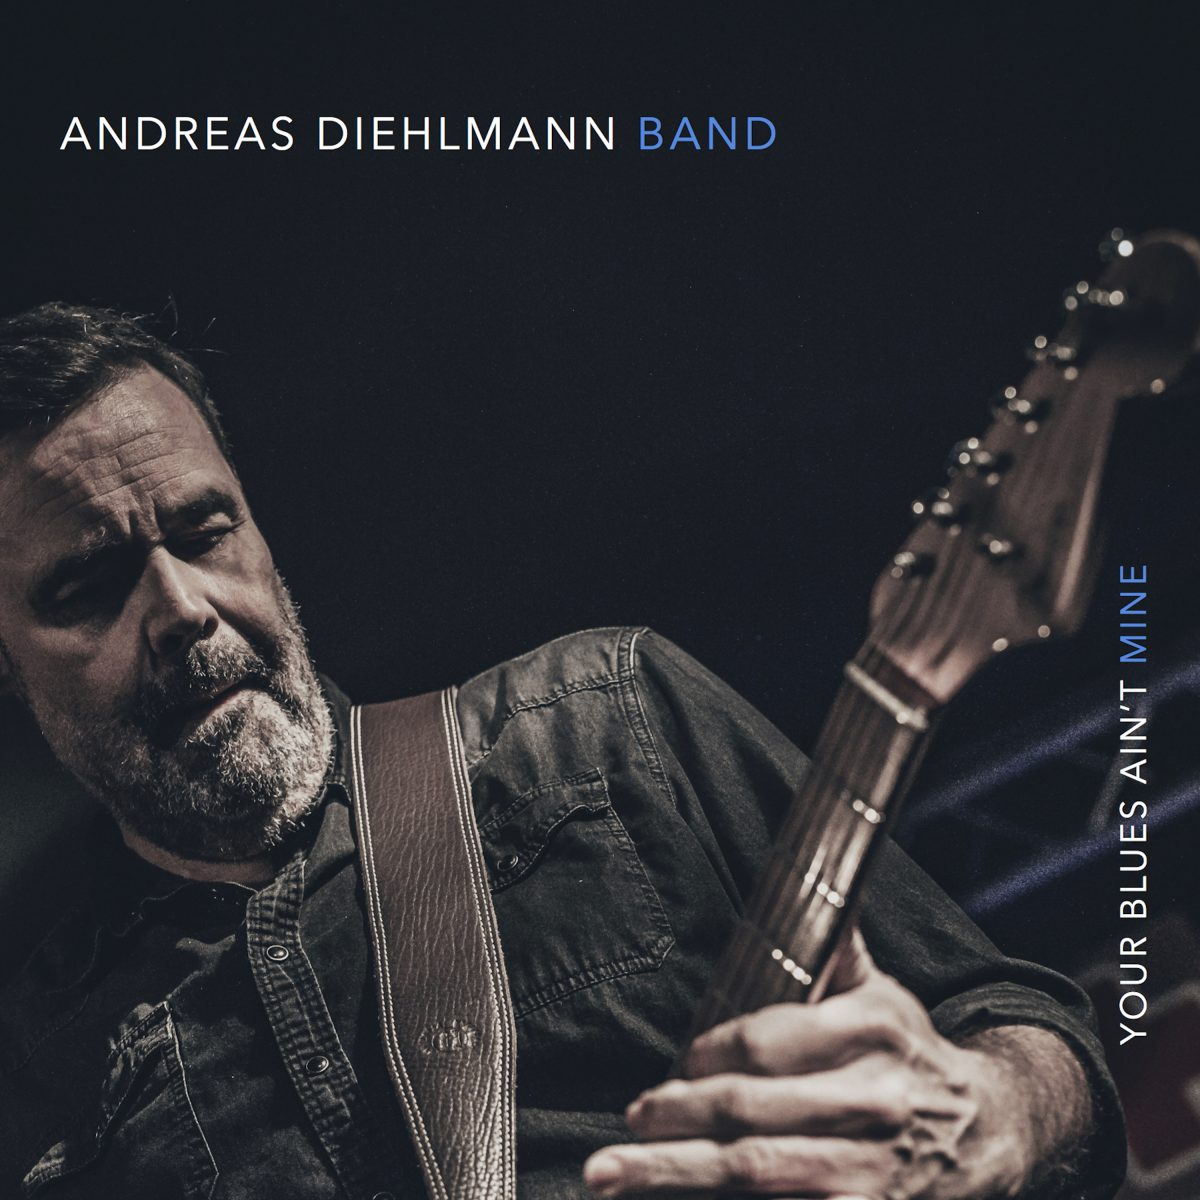 ANDREAS DIEHLMANN BAND - YOUR BLUES AIN'T MINE (2018)